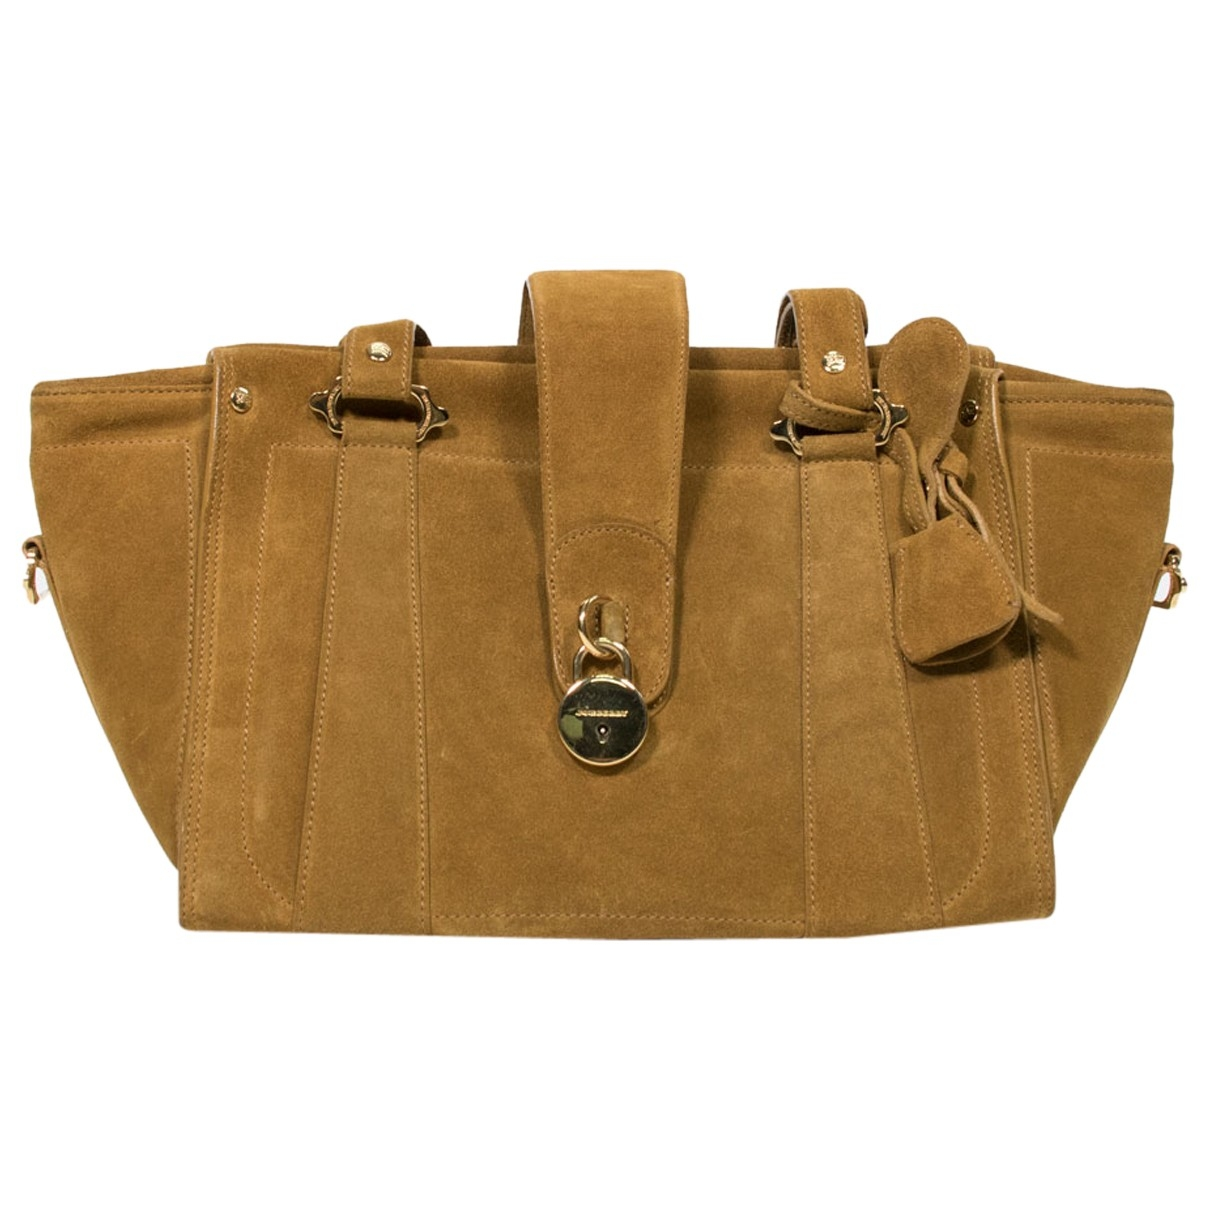 Burberry \N Camel Suede handbag for Women \N